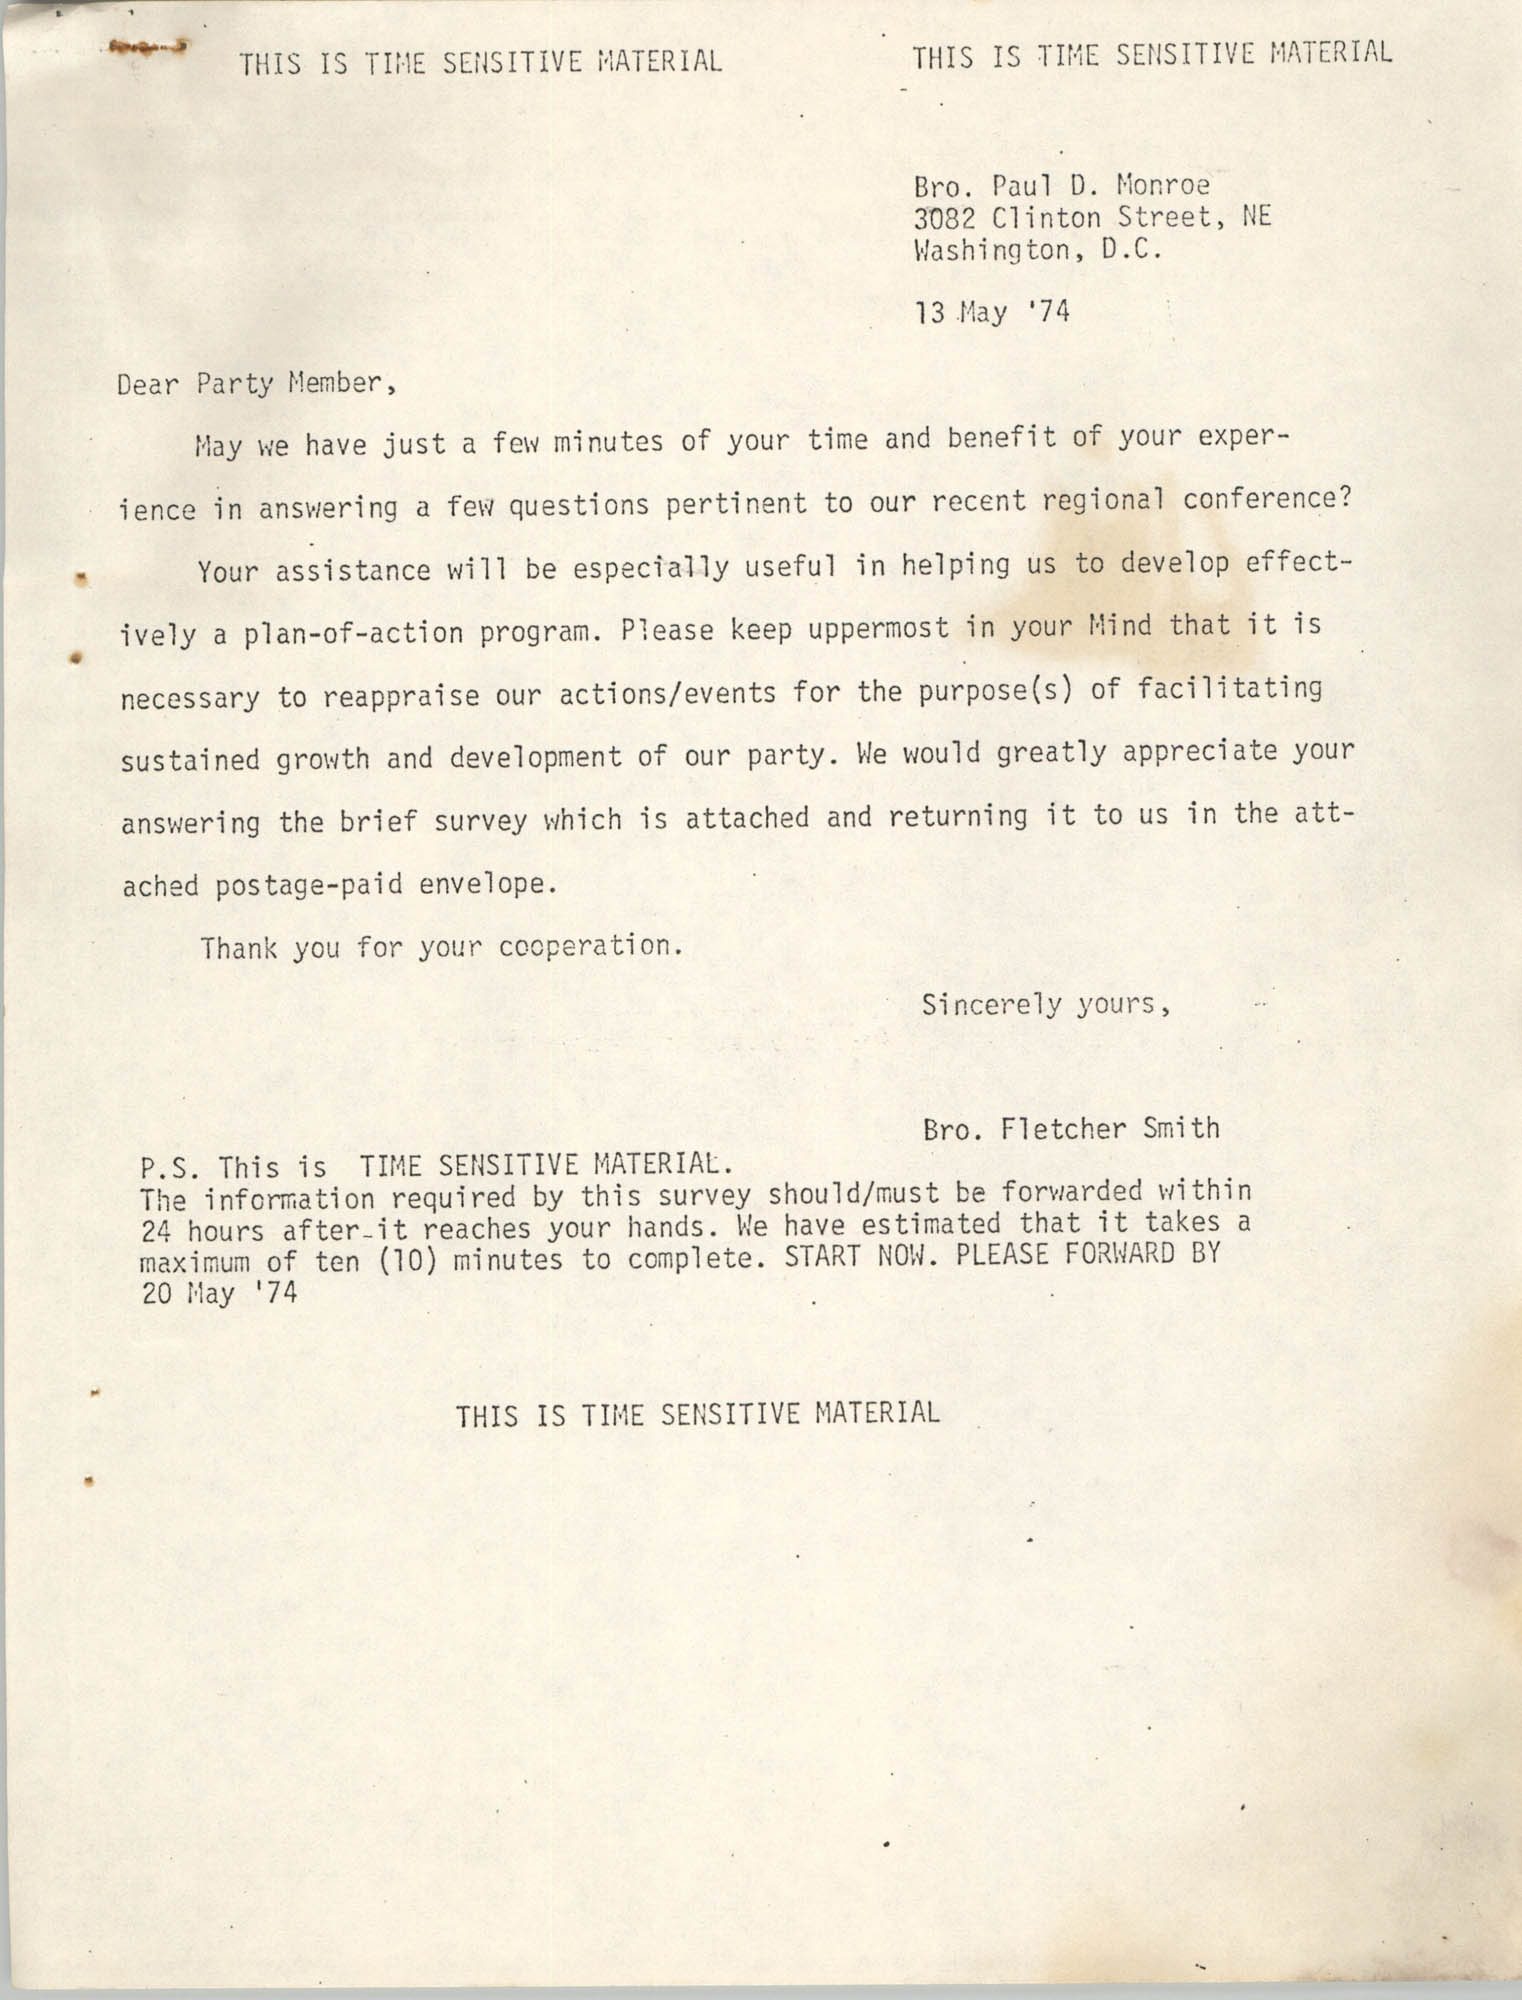 Letter from Fletcher Smith to Paul D. Monroe, May 13, 1974